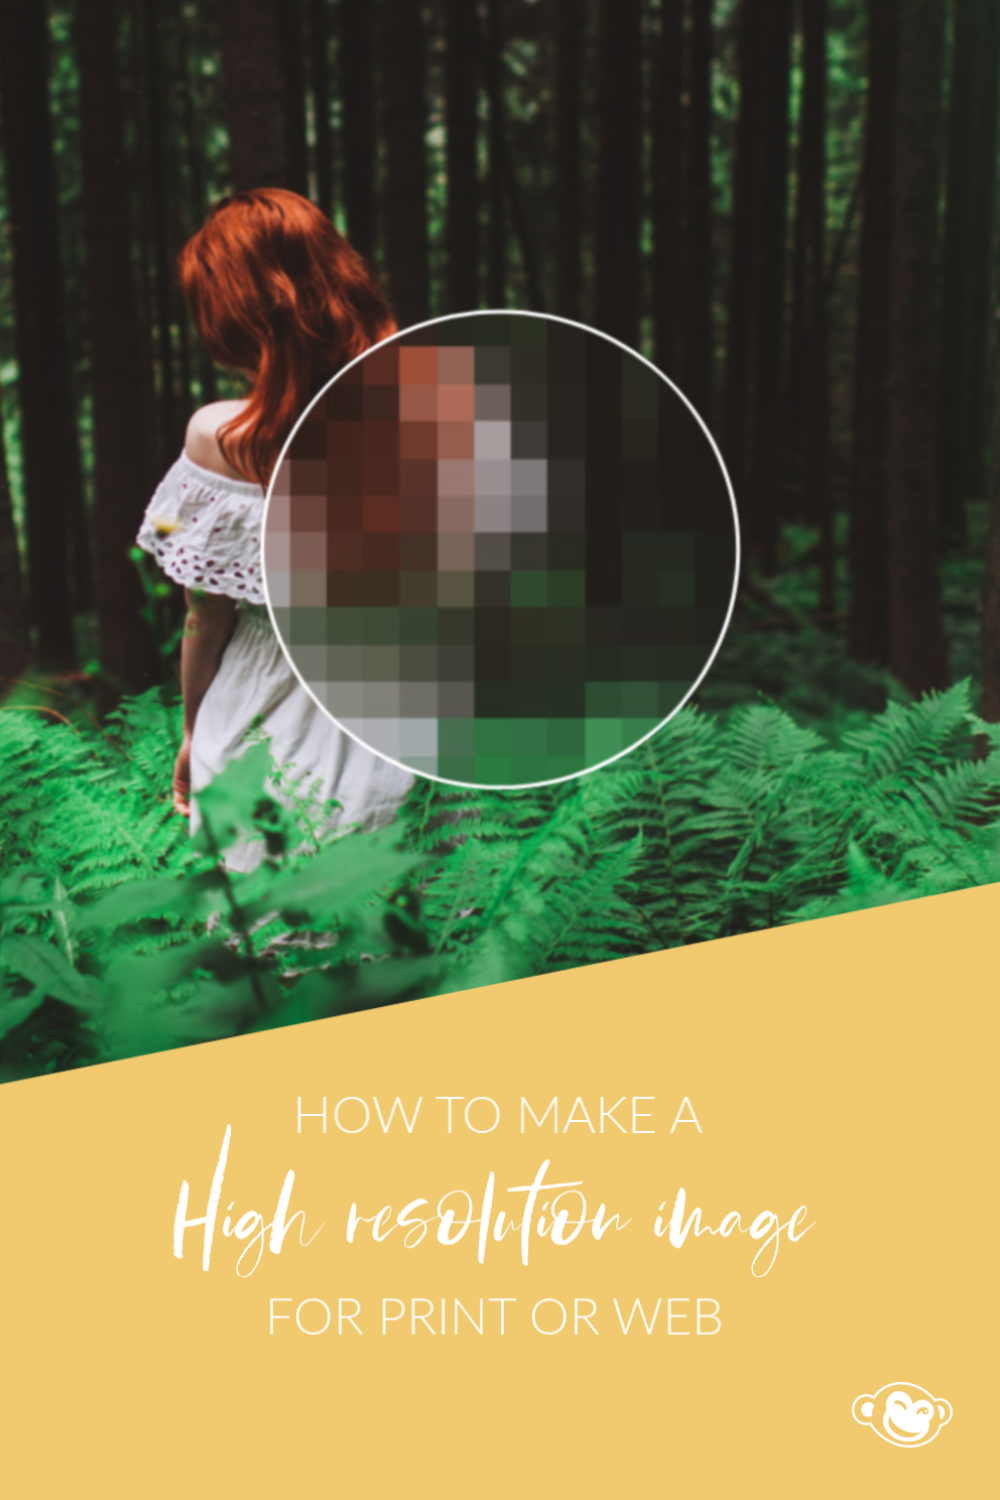 How To Make High Resolution Images For Print Or Web Internet Marketing Strategy